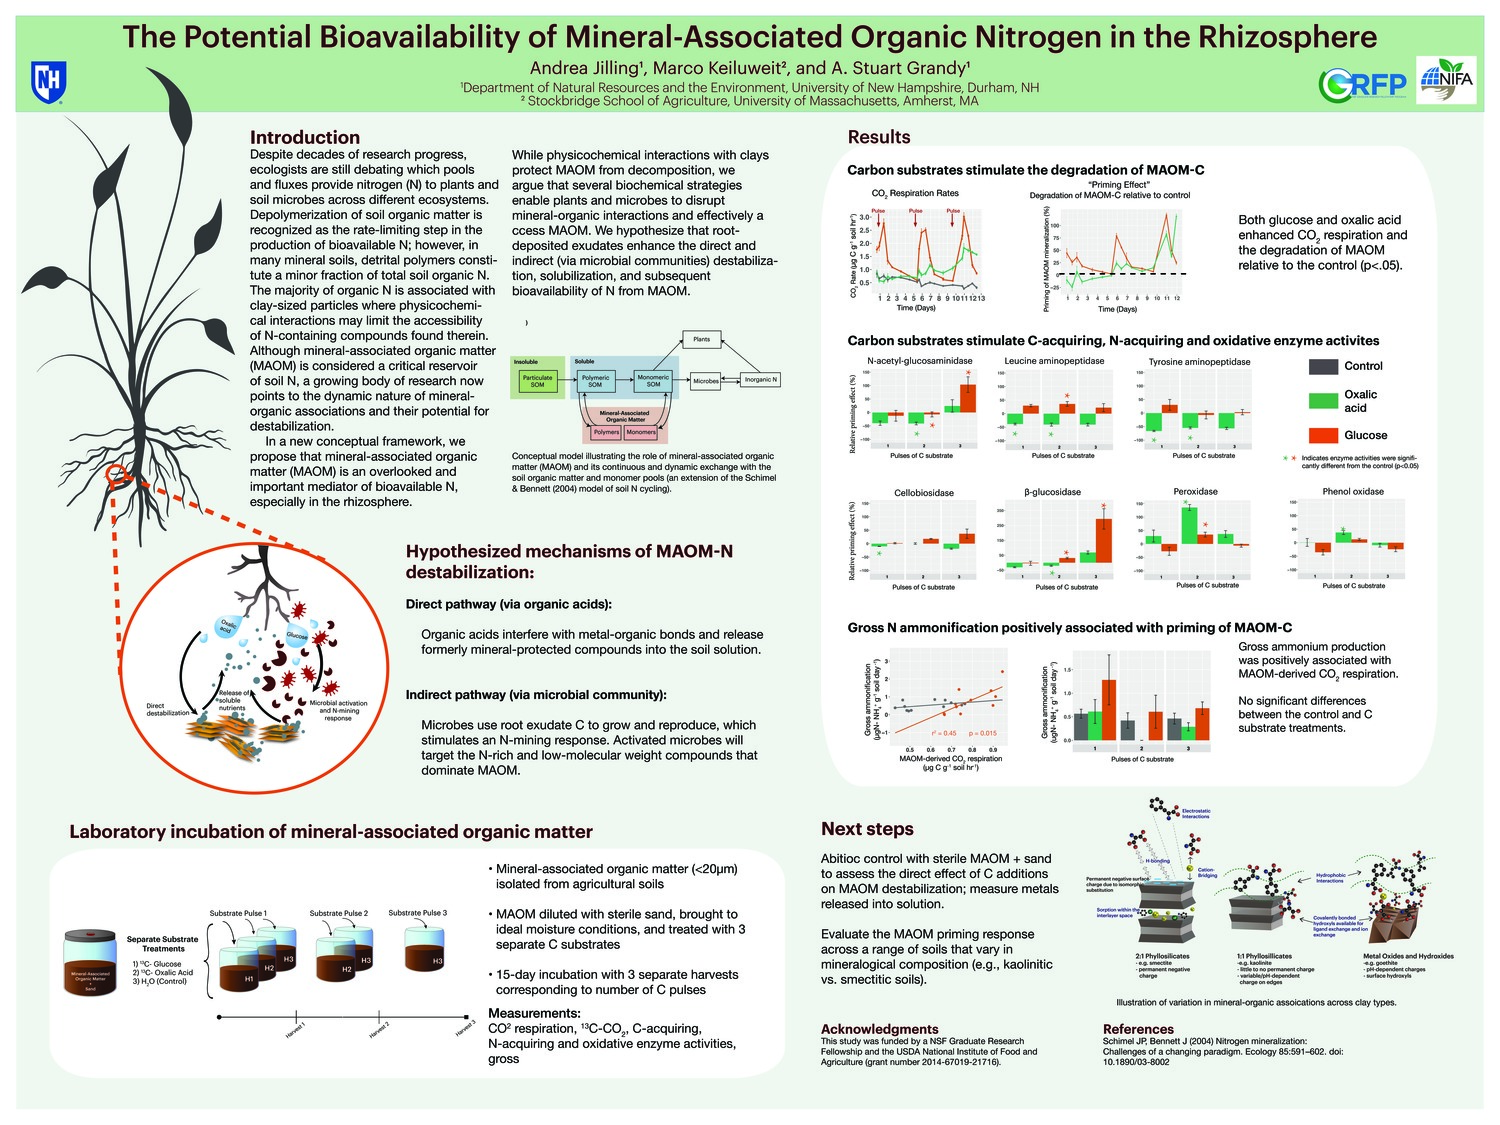 The Potential Bioavailability Of Mineral-Associated Organic Nitrogen In The Rhizosphere by andreajilling